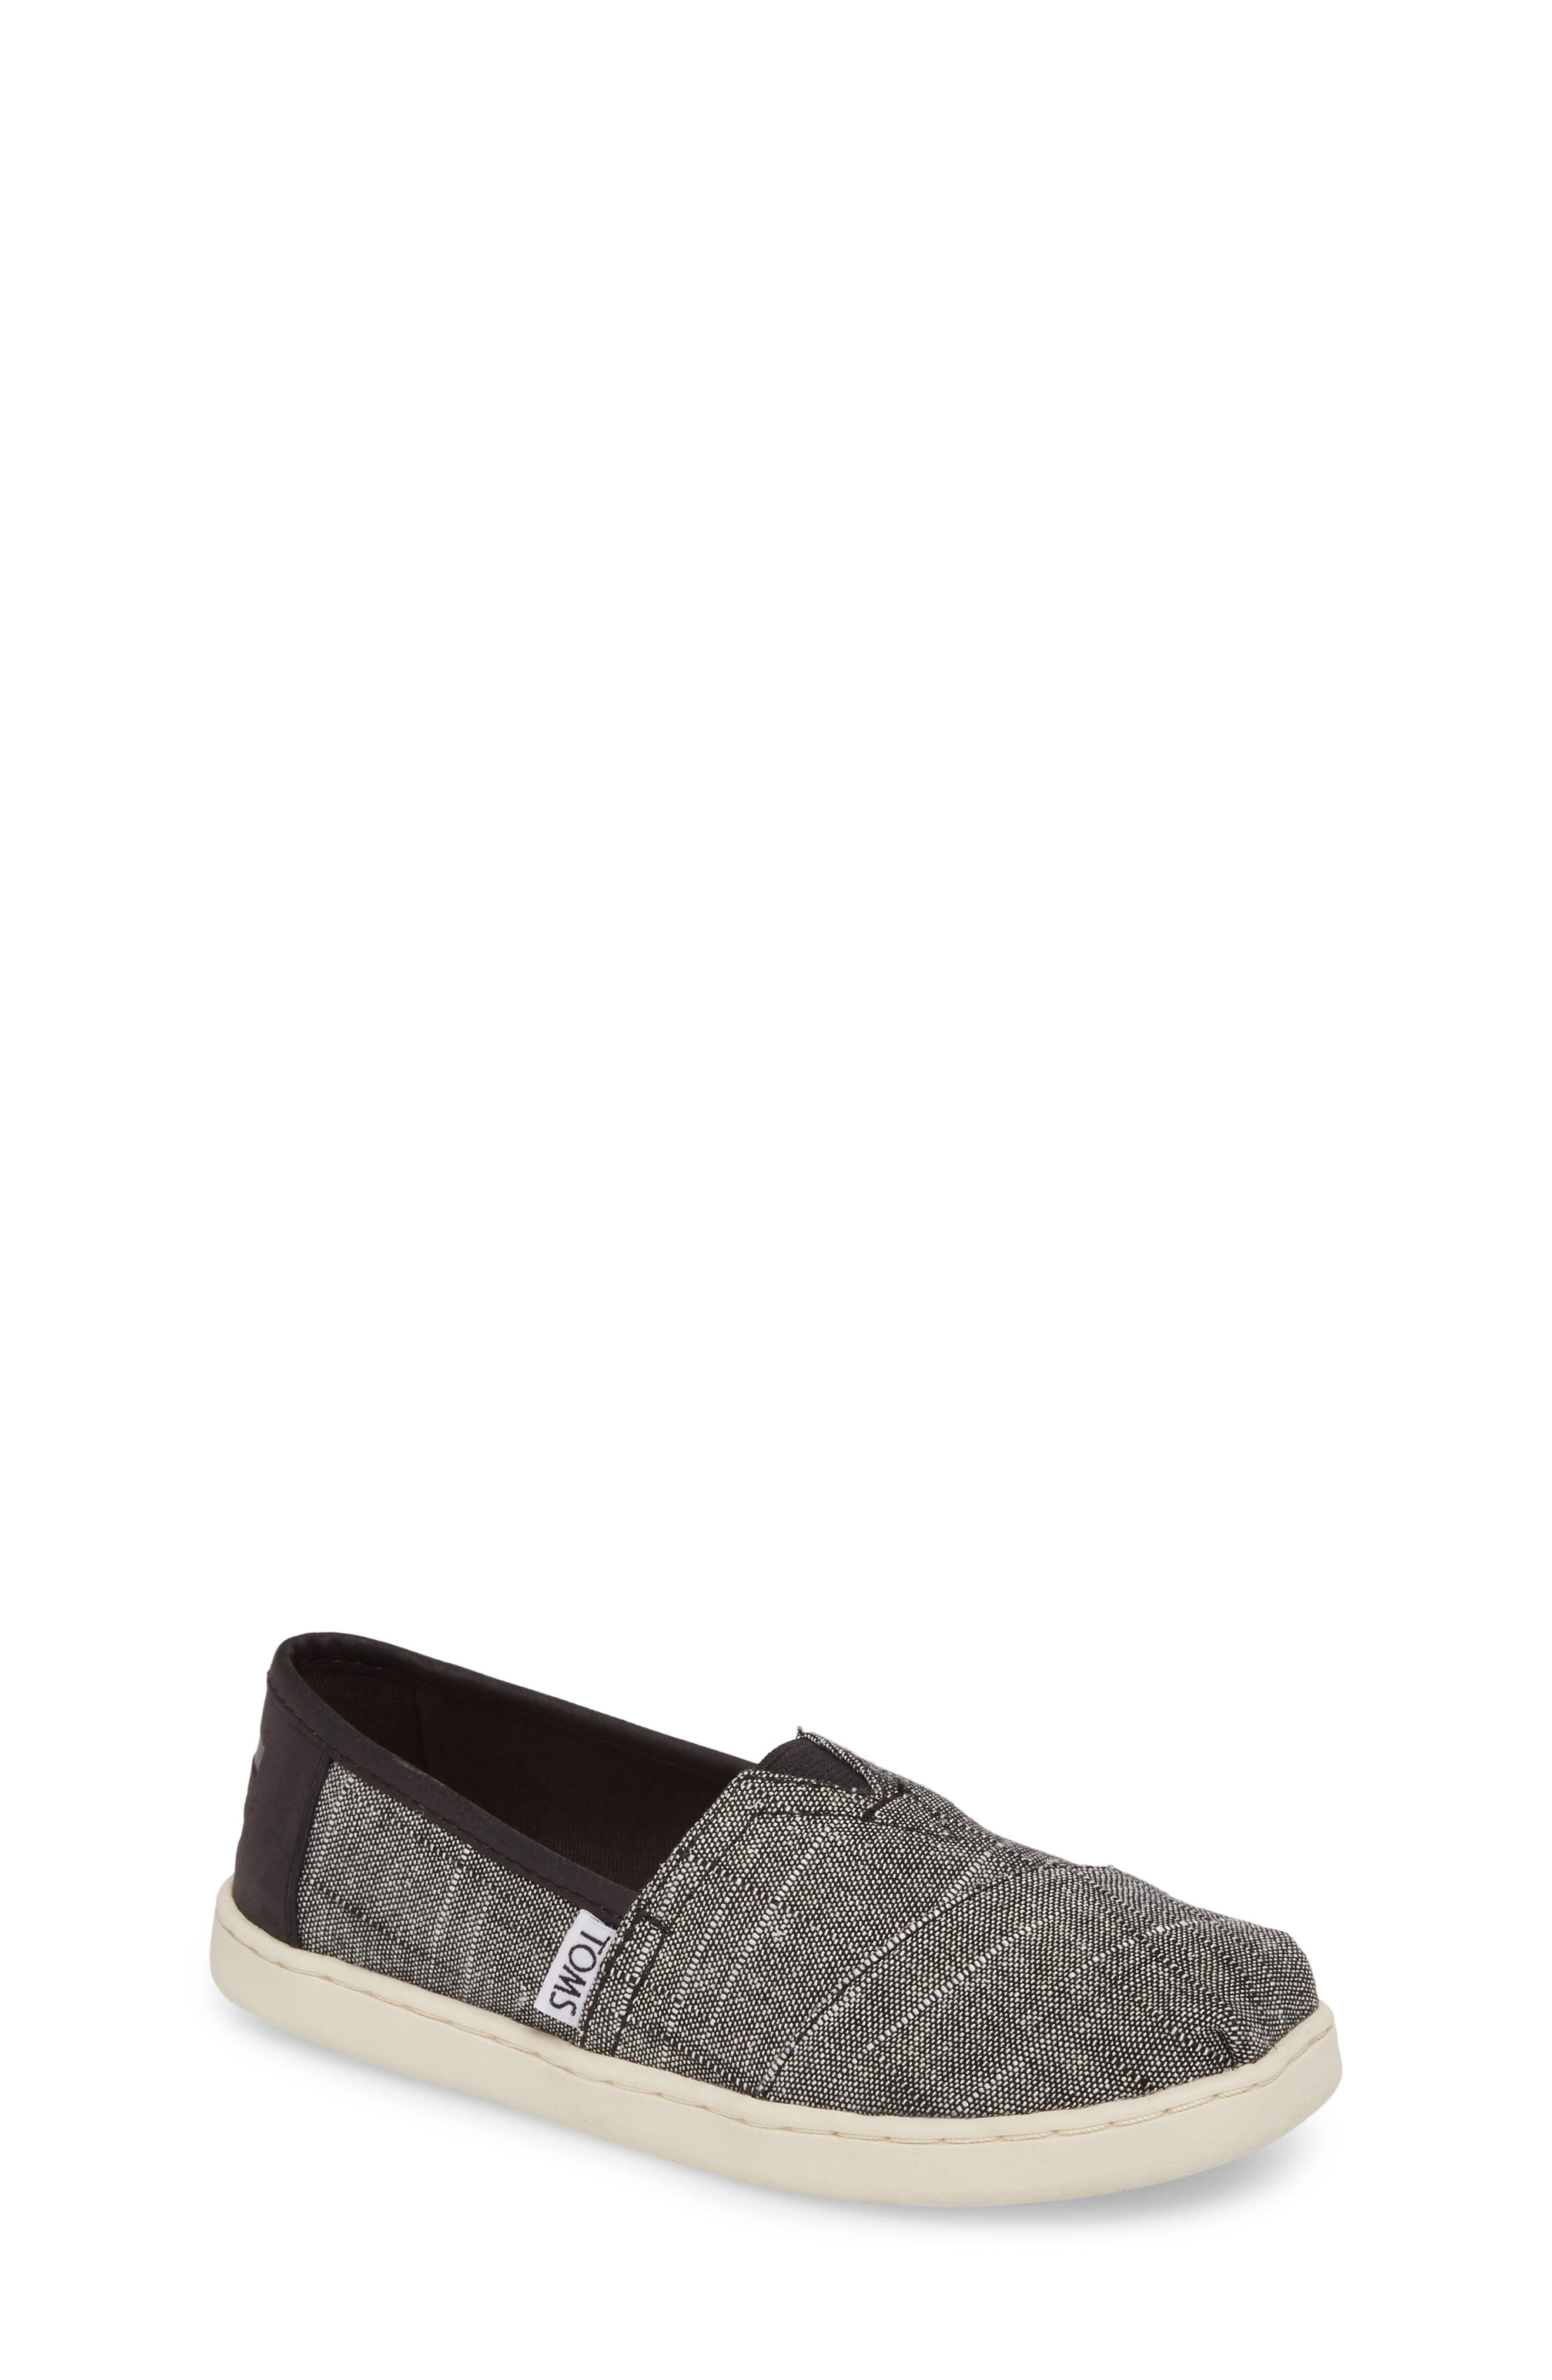 TOMS Classic Alpargata Slip-On, Main, color, BLACK TEXTURED CHAMBRAY